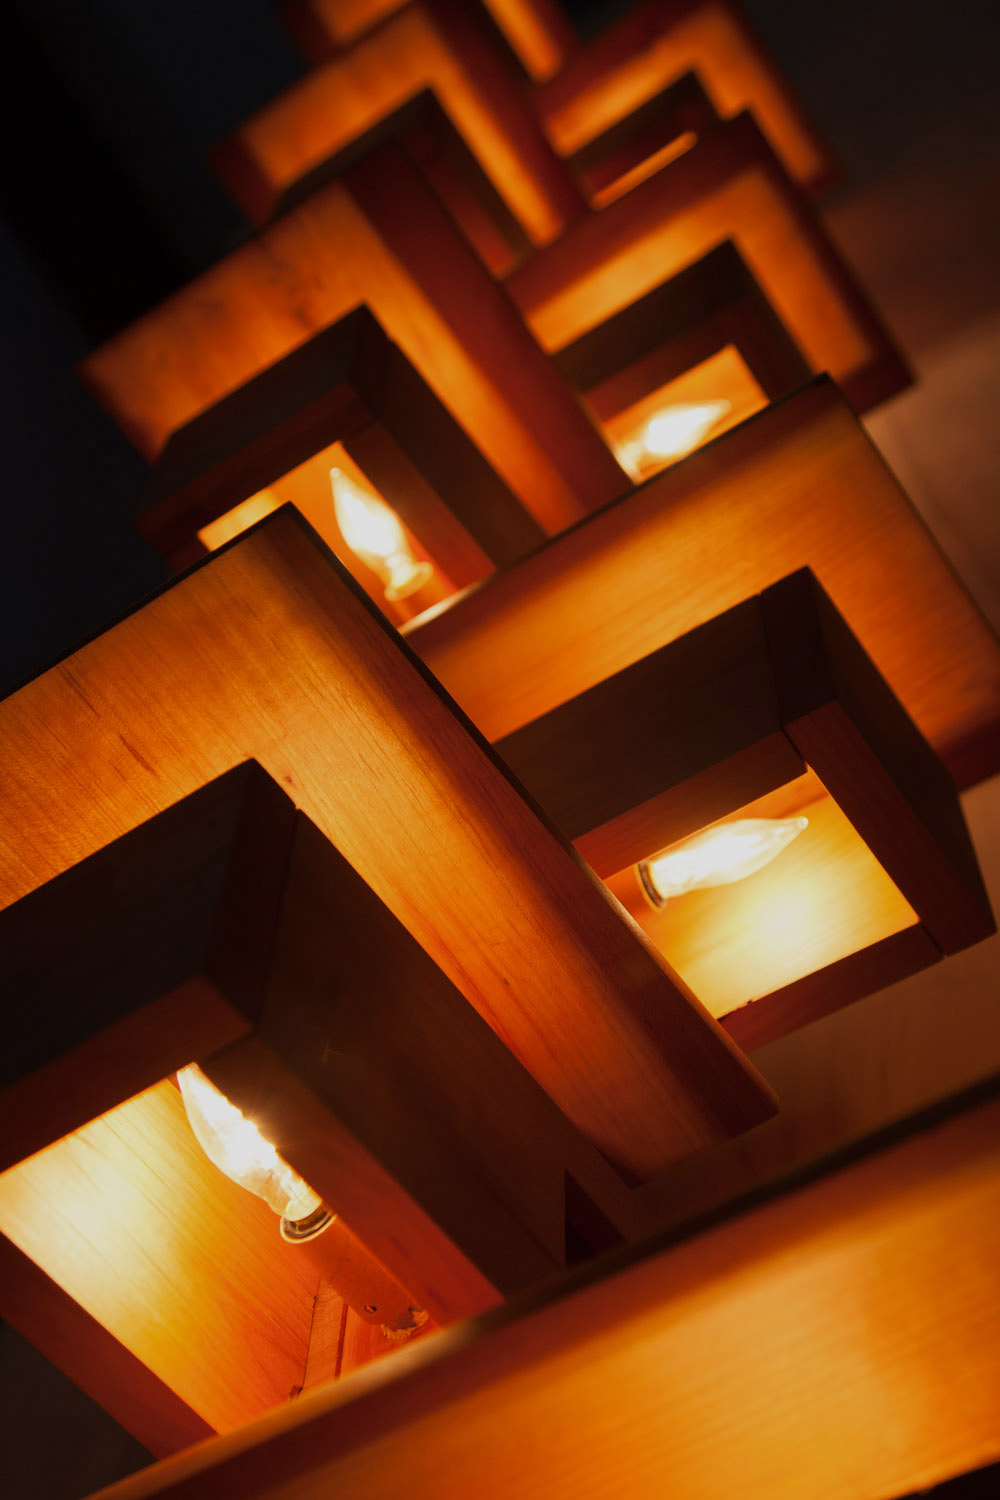 Hand-crafted lamps and wood sculptures